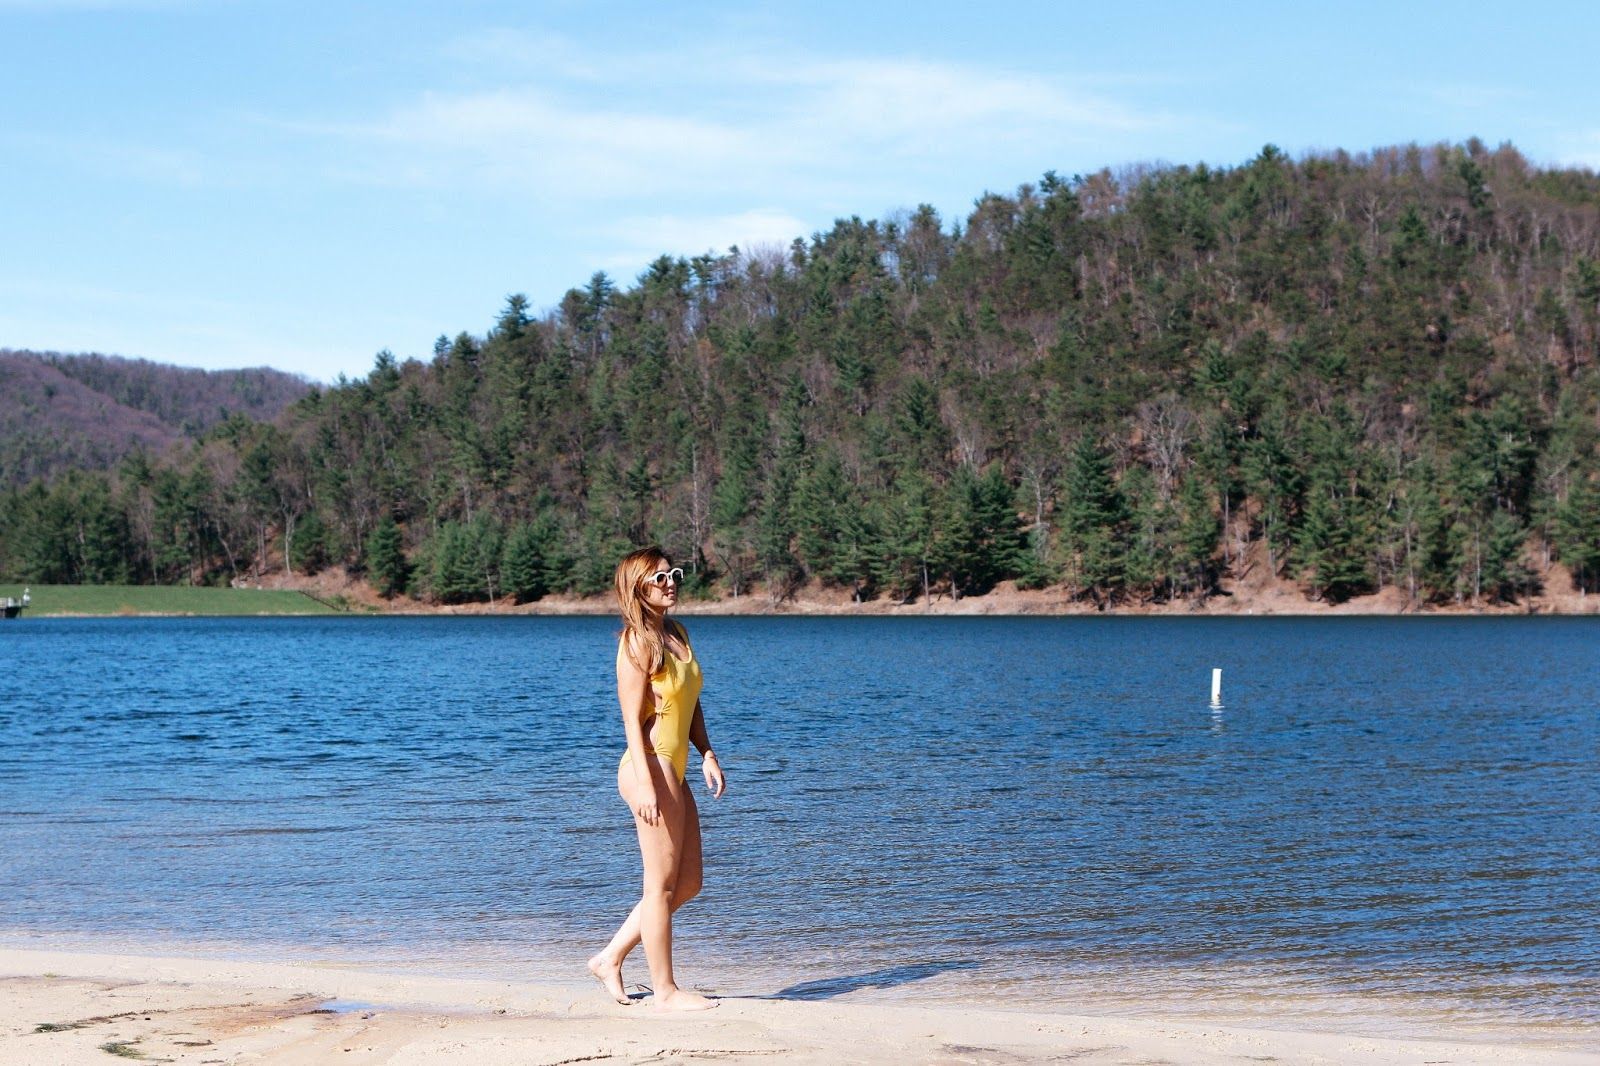 glamping, glamping hub, virginia, luray, things to do in virginia, things to do in luray, houses for rent, weekend getaway, lake arrowhead